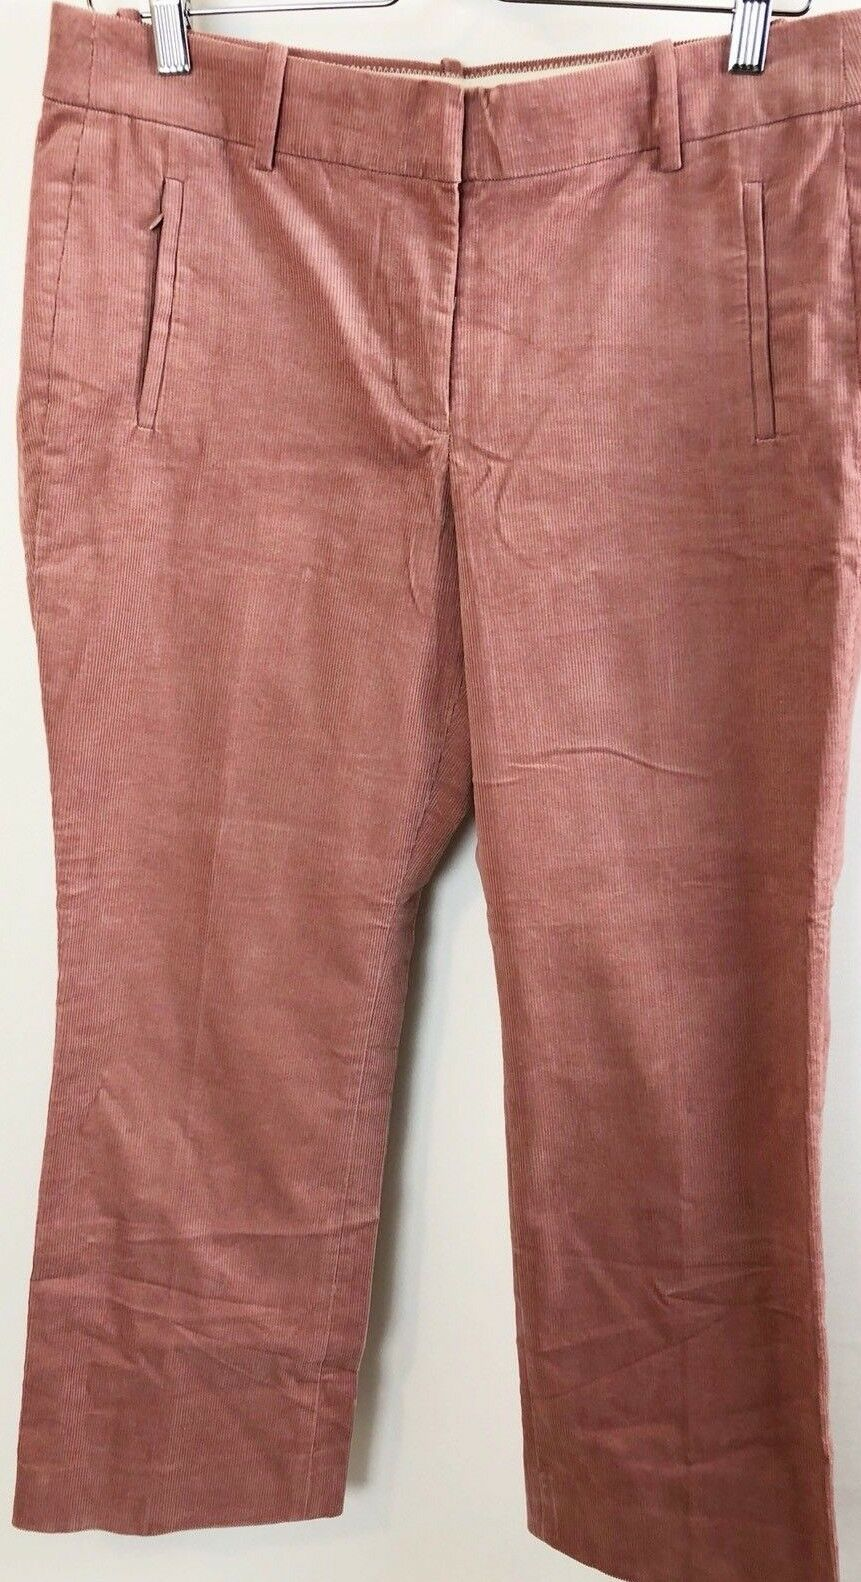 J. Crew Sammie Women's Pants Curduroy Size 8 Pale Pink red Cropped Ankle